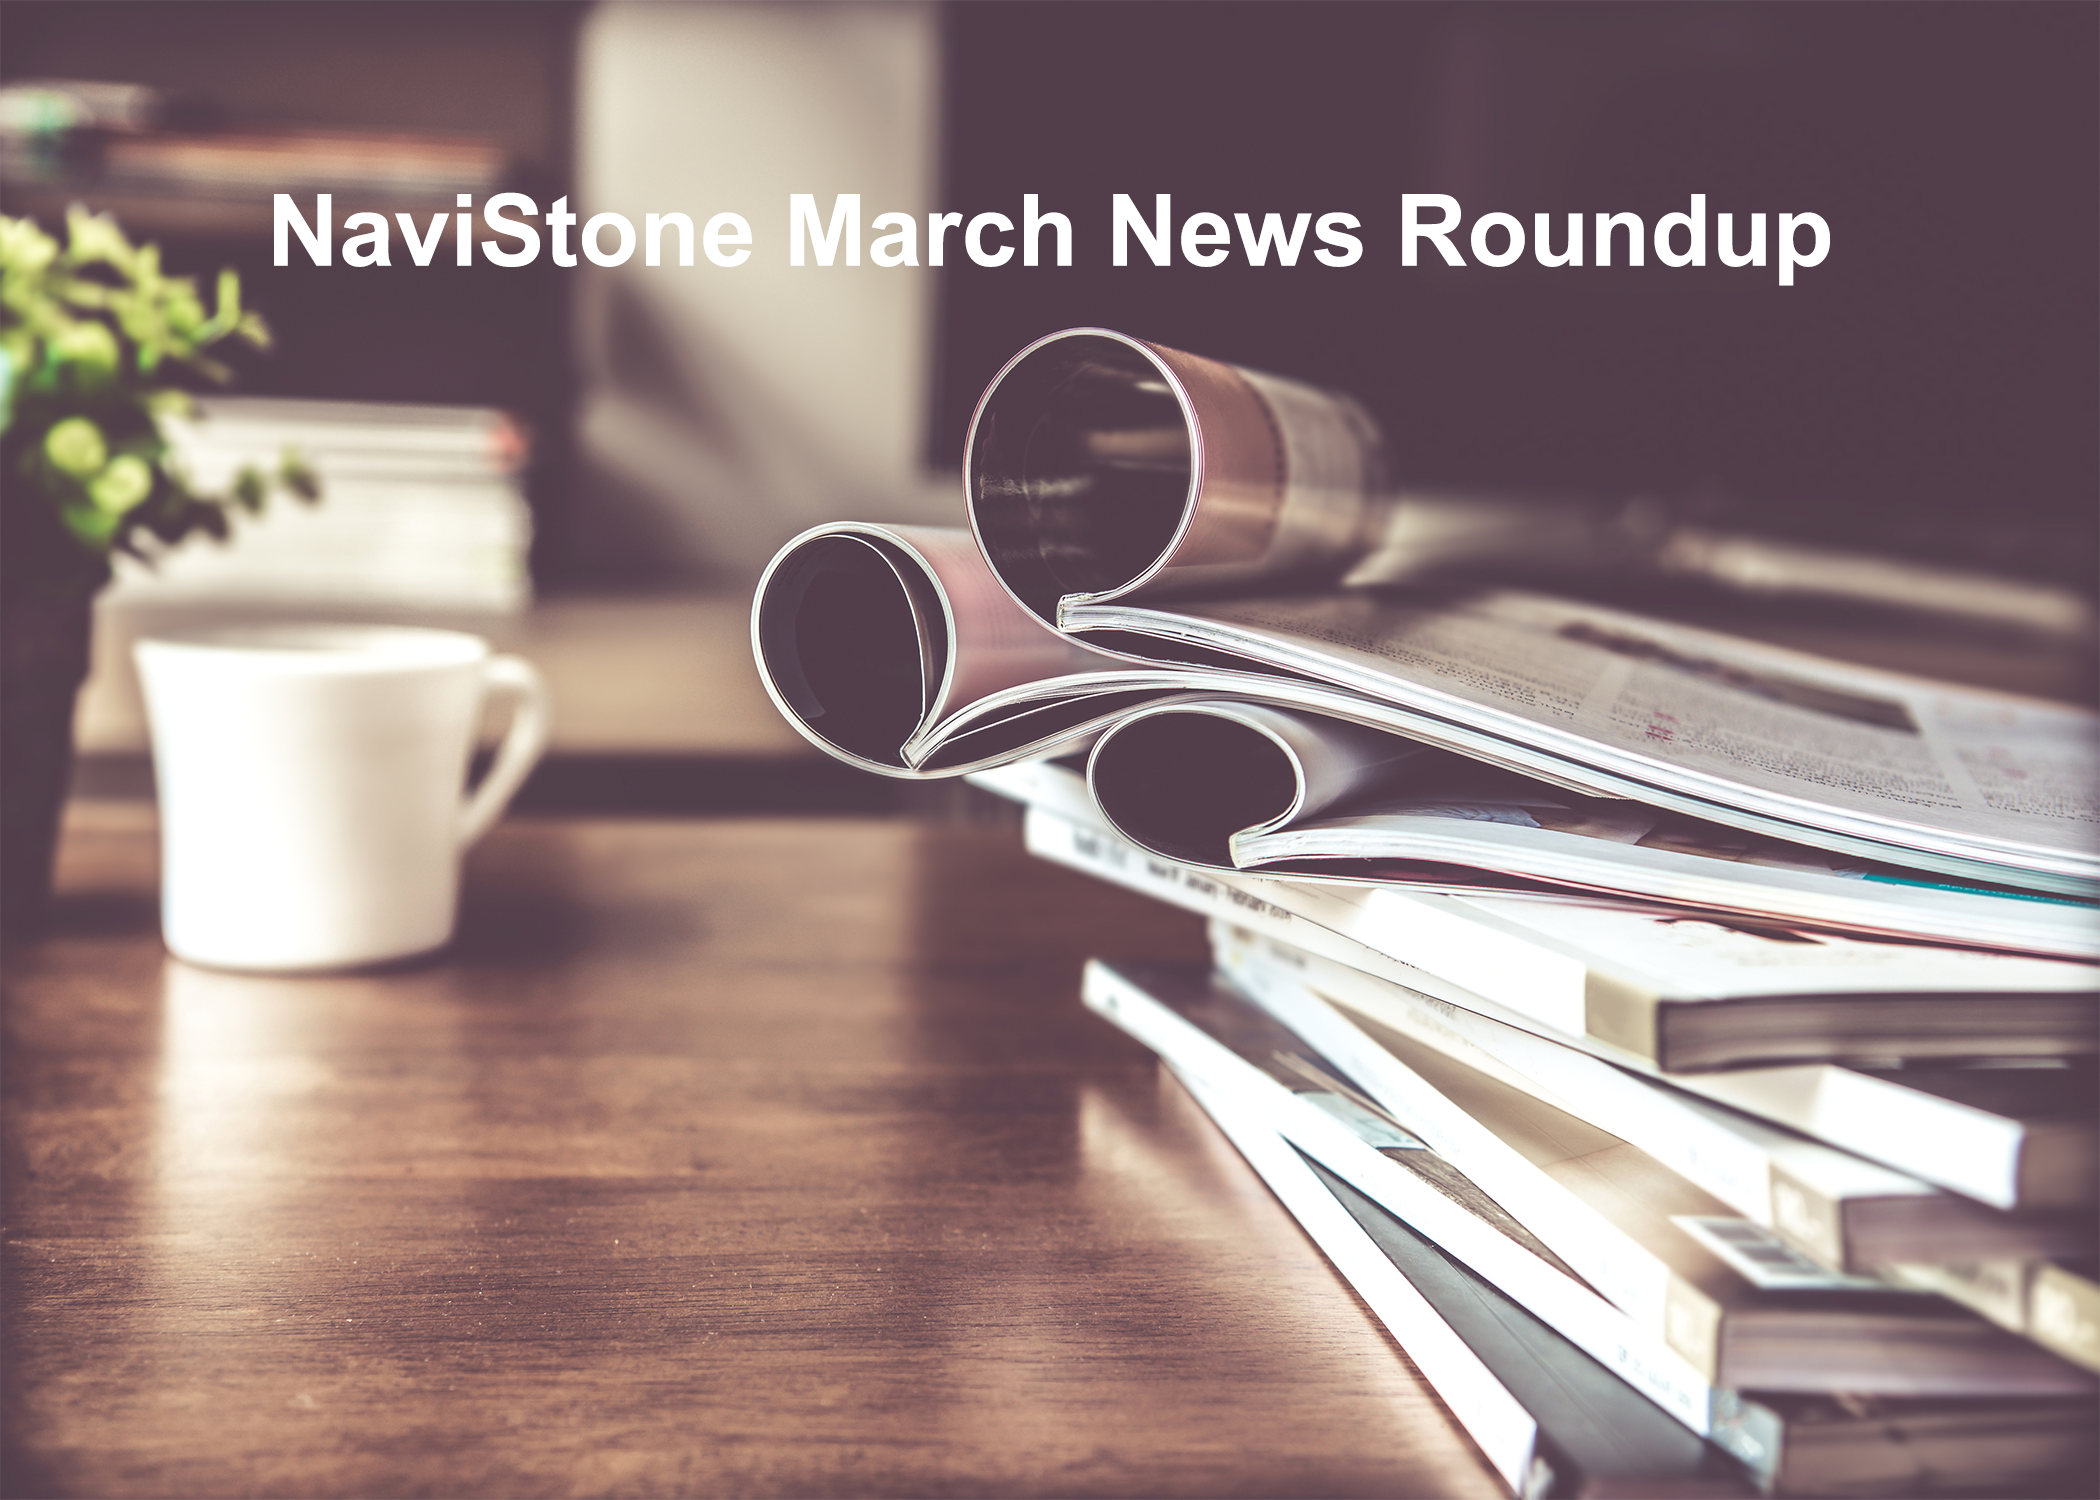 NaviStone March News Roundup